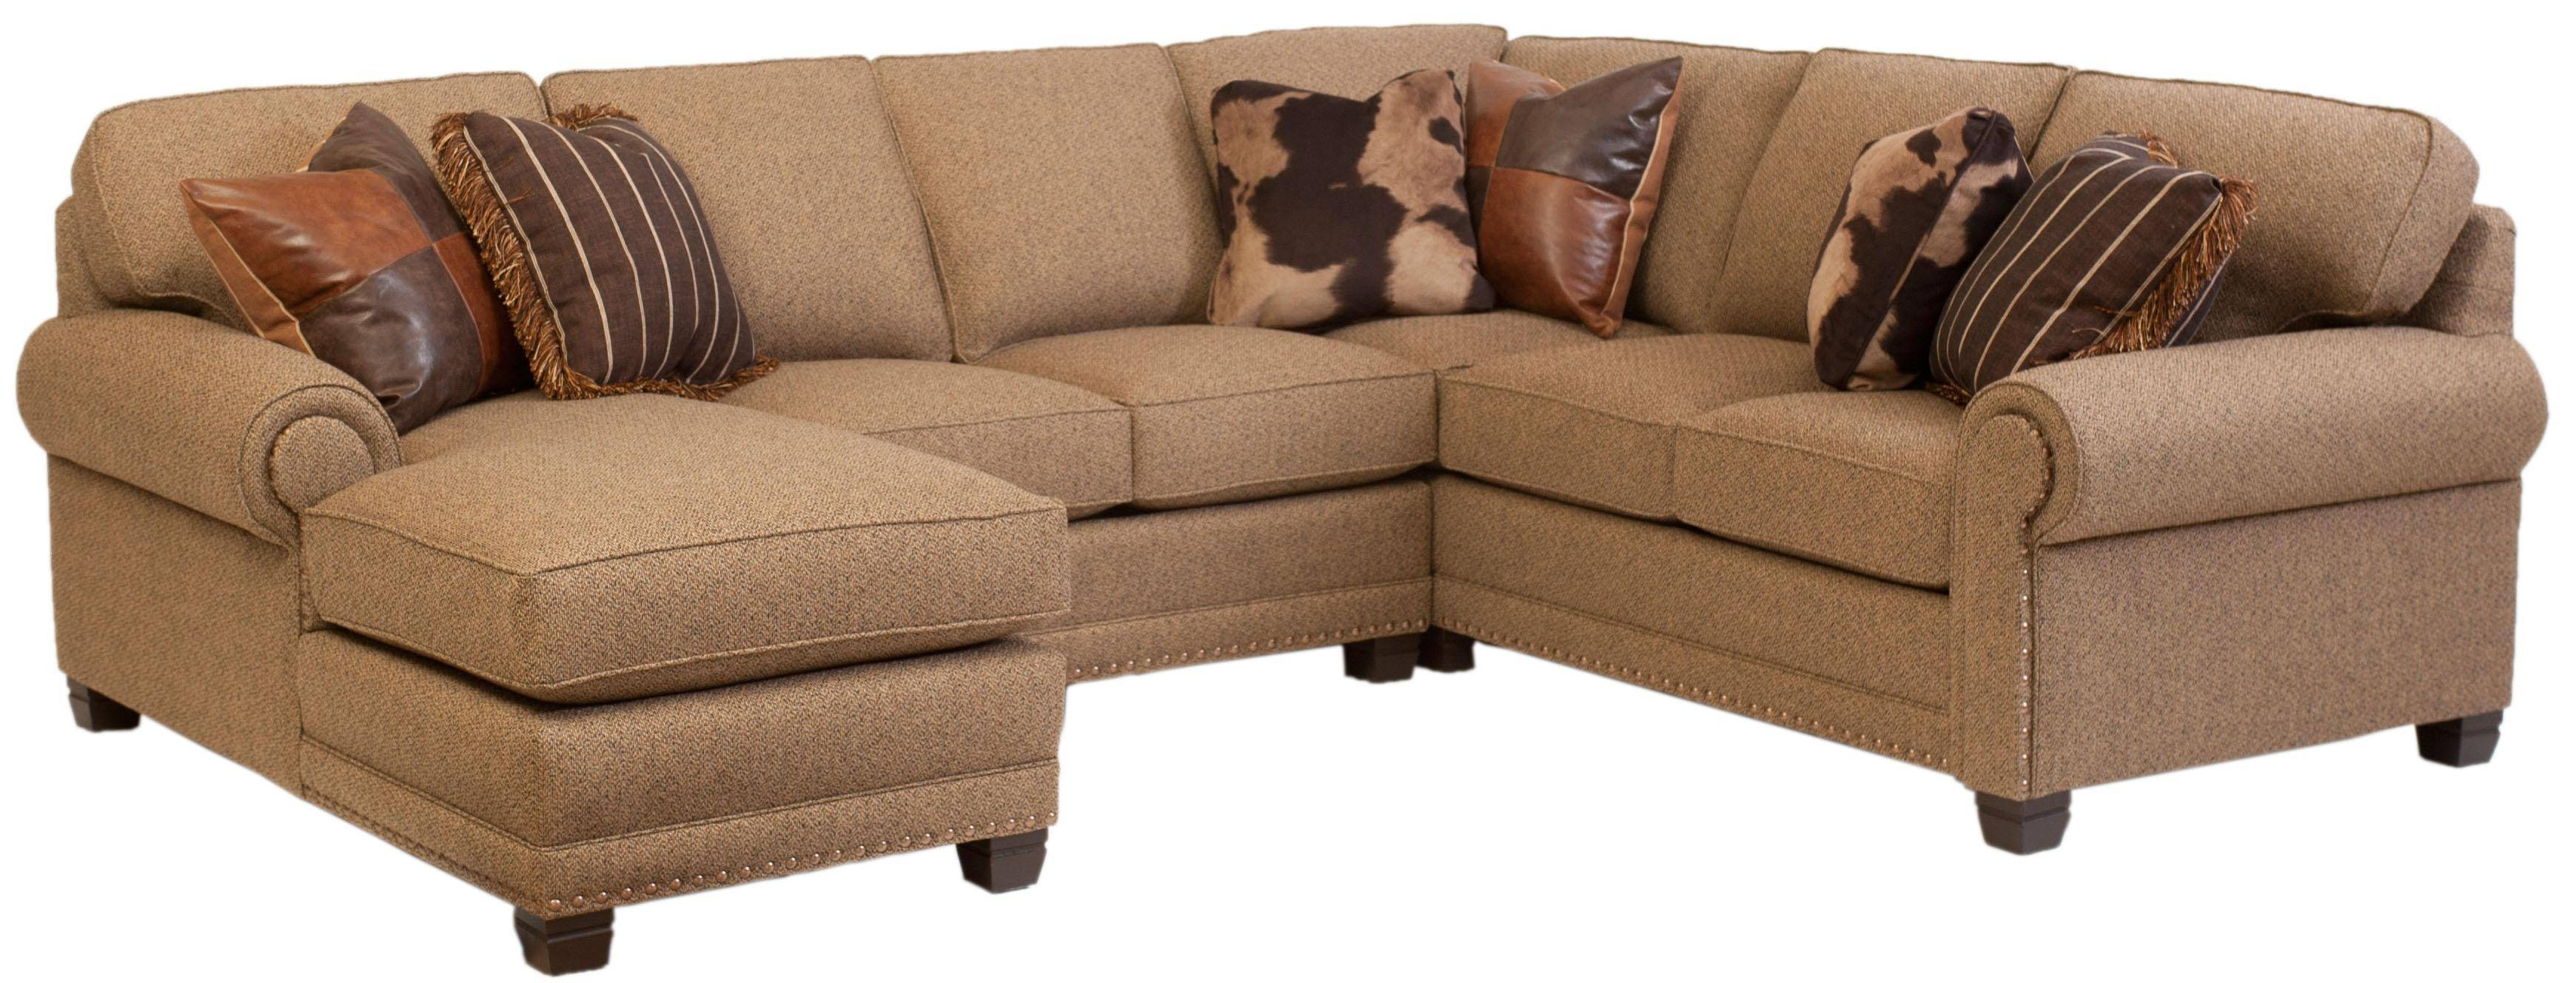 Sofas Center : Small Sectional Sofa With Chaisee Show Home Design throughout Angled Chaise Sofa (Image 28 of 30)